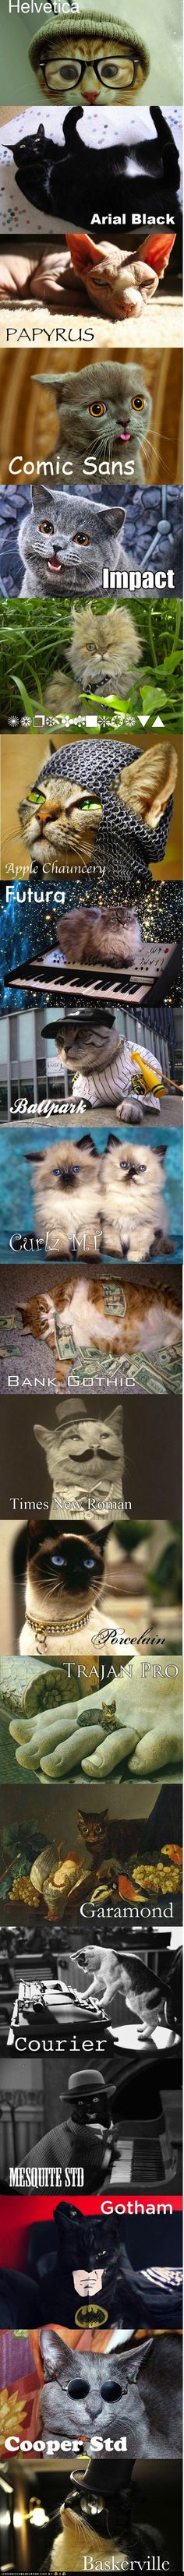 I don't even like cats. but this is hilar.